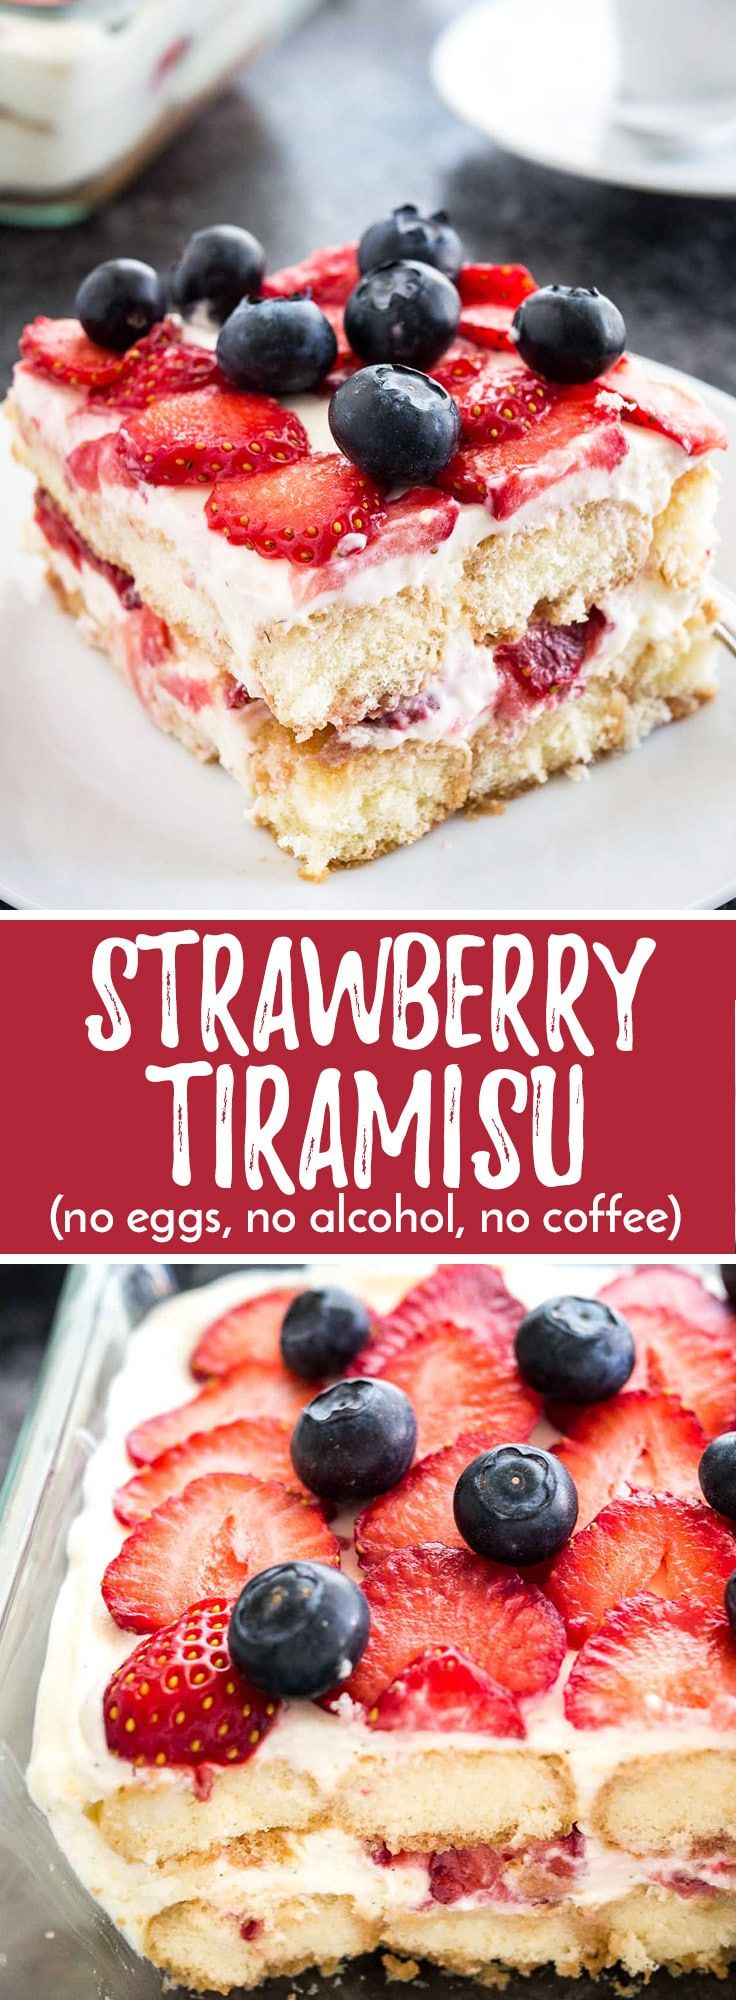 This Strawberry Tiramisu is the perfect no-bake summer dessert made with fresh strawberries, ladyfingers, and mascarpone! This summer version is made without coffee, alcohol, and raw eggs and can be enjoyed by the whole family.